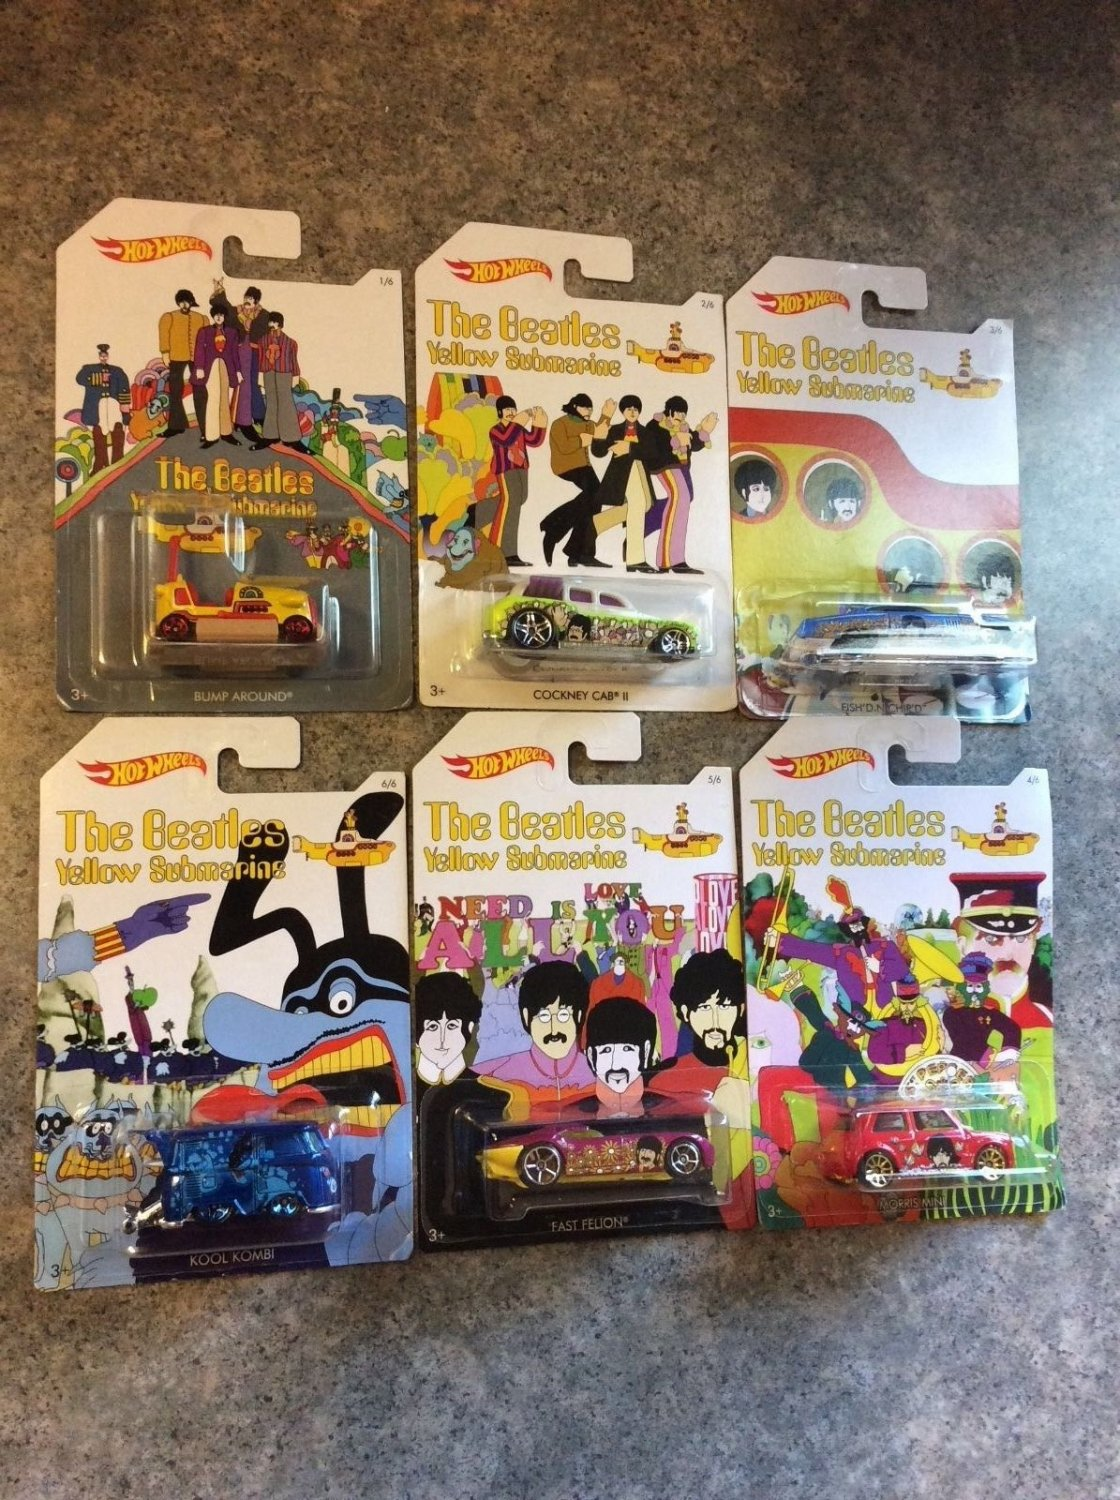 The Beatles - Yellow Submarine - Full Complete Set of 6 - 2016 Hot Wheels Cars